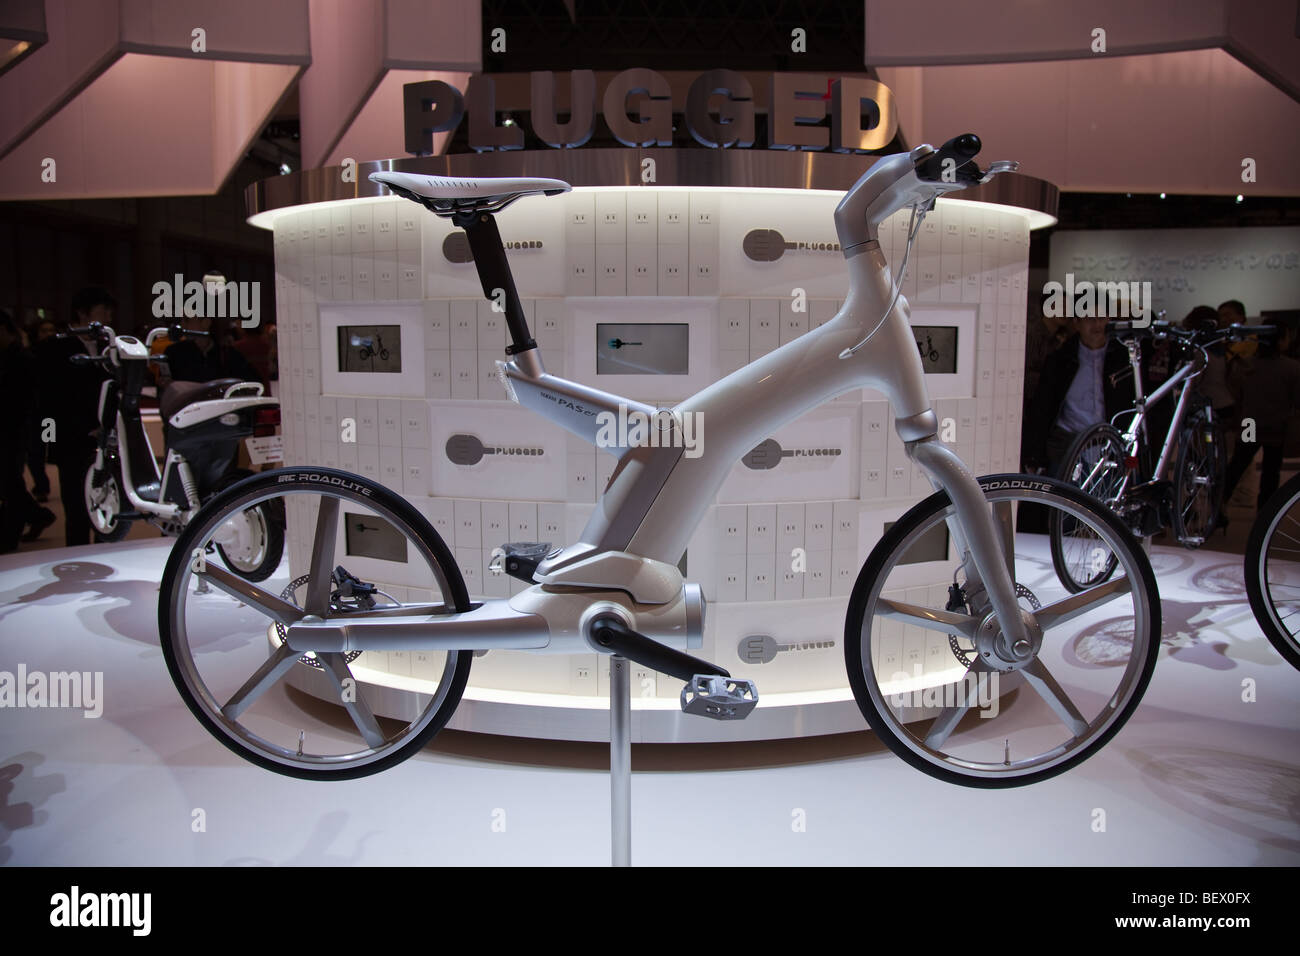 Yamaha unveils new electric bike the PAX at the Tokyo Motor Show - Stock Image